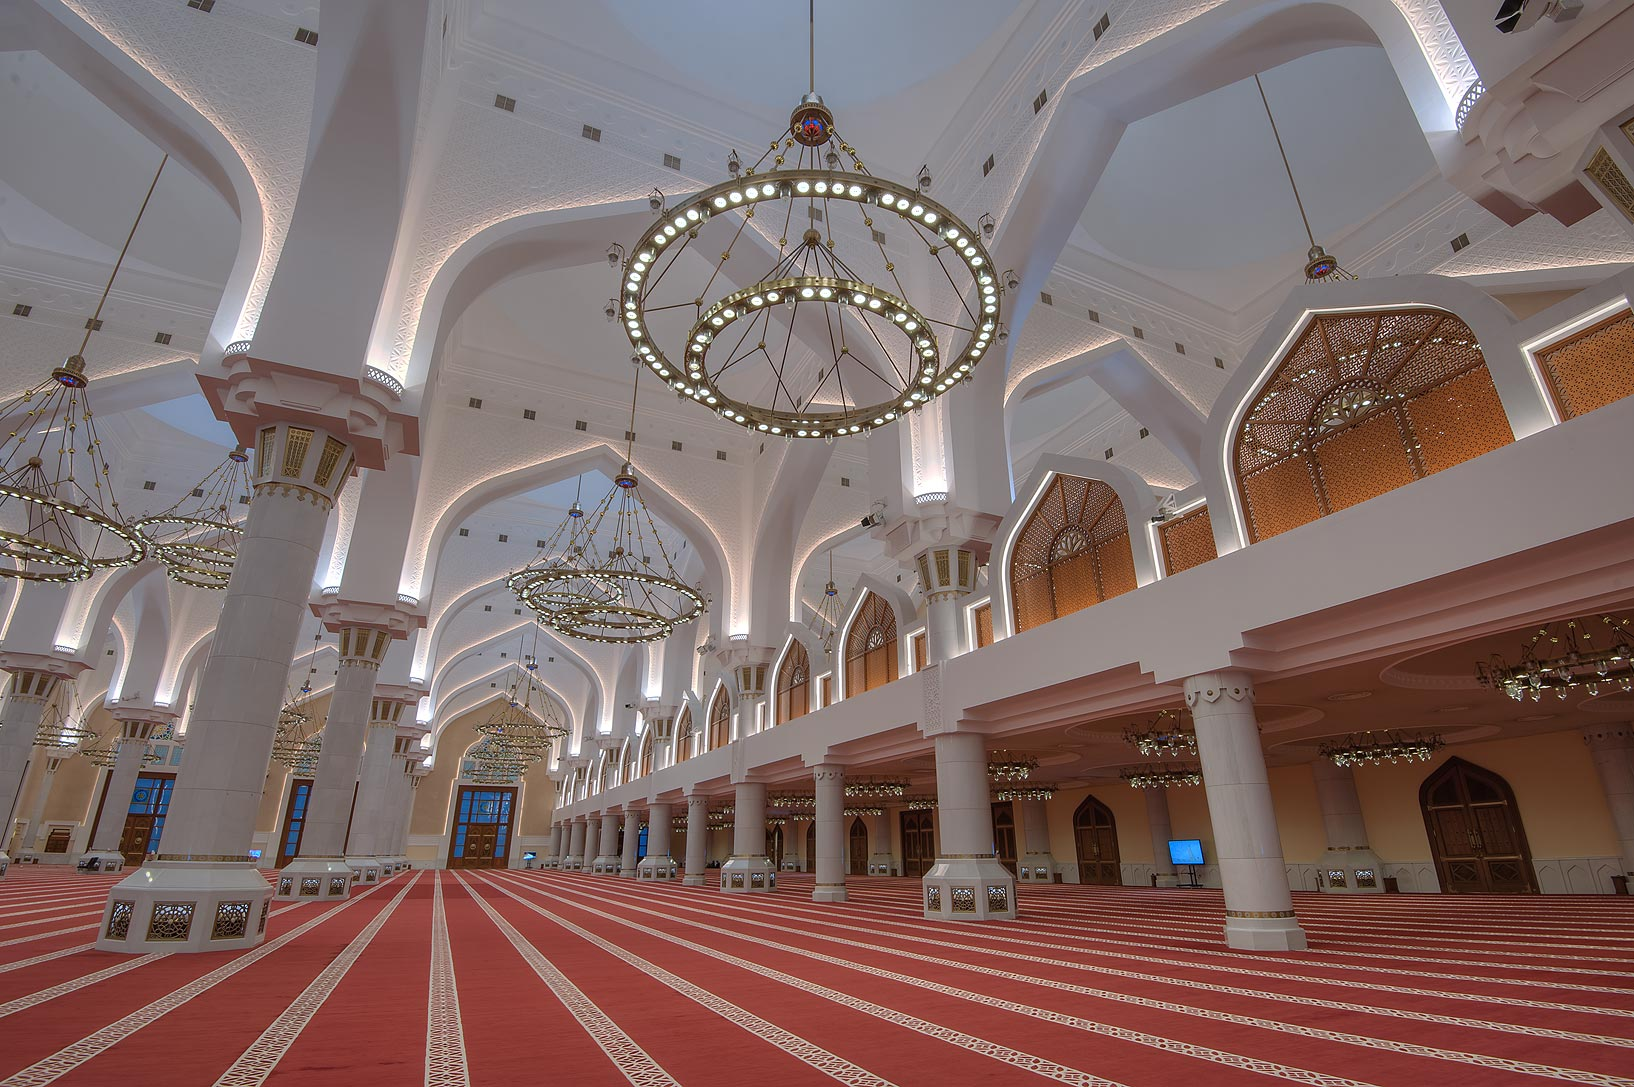 Interior of State Mosque (Sheikh Muhammad Ibn Abdul Wahhab Mosque) at morning. Doha, Qatar